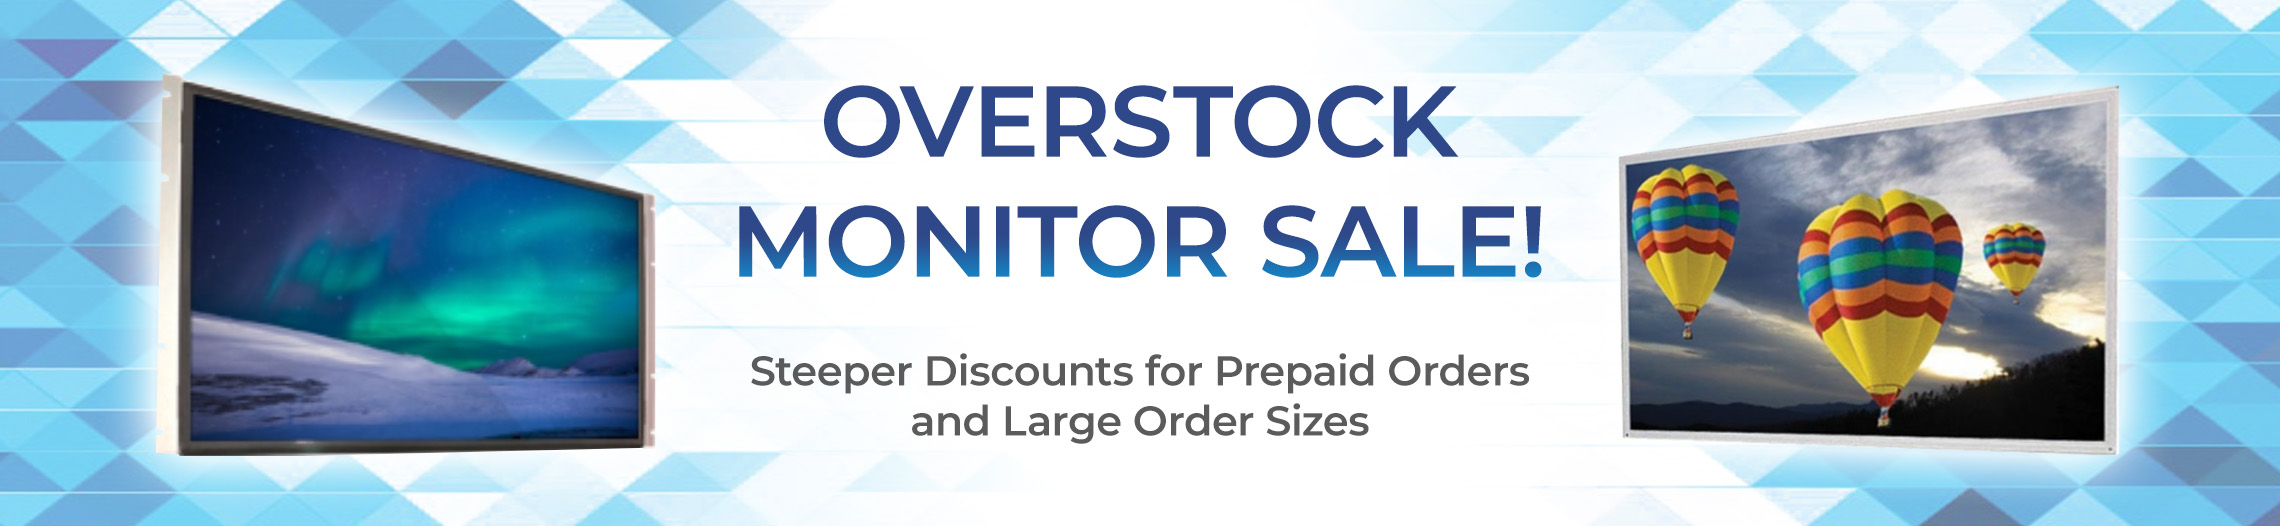 Overstock Inventory Sale